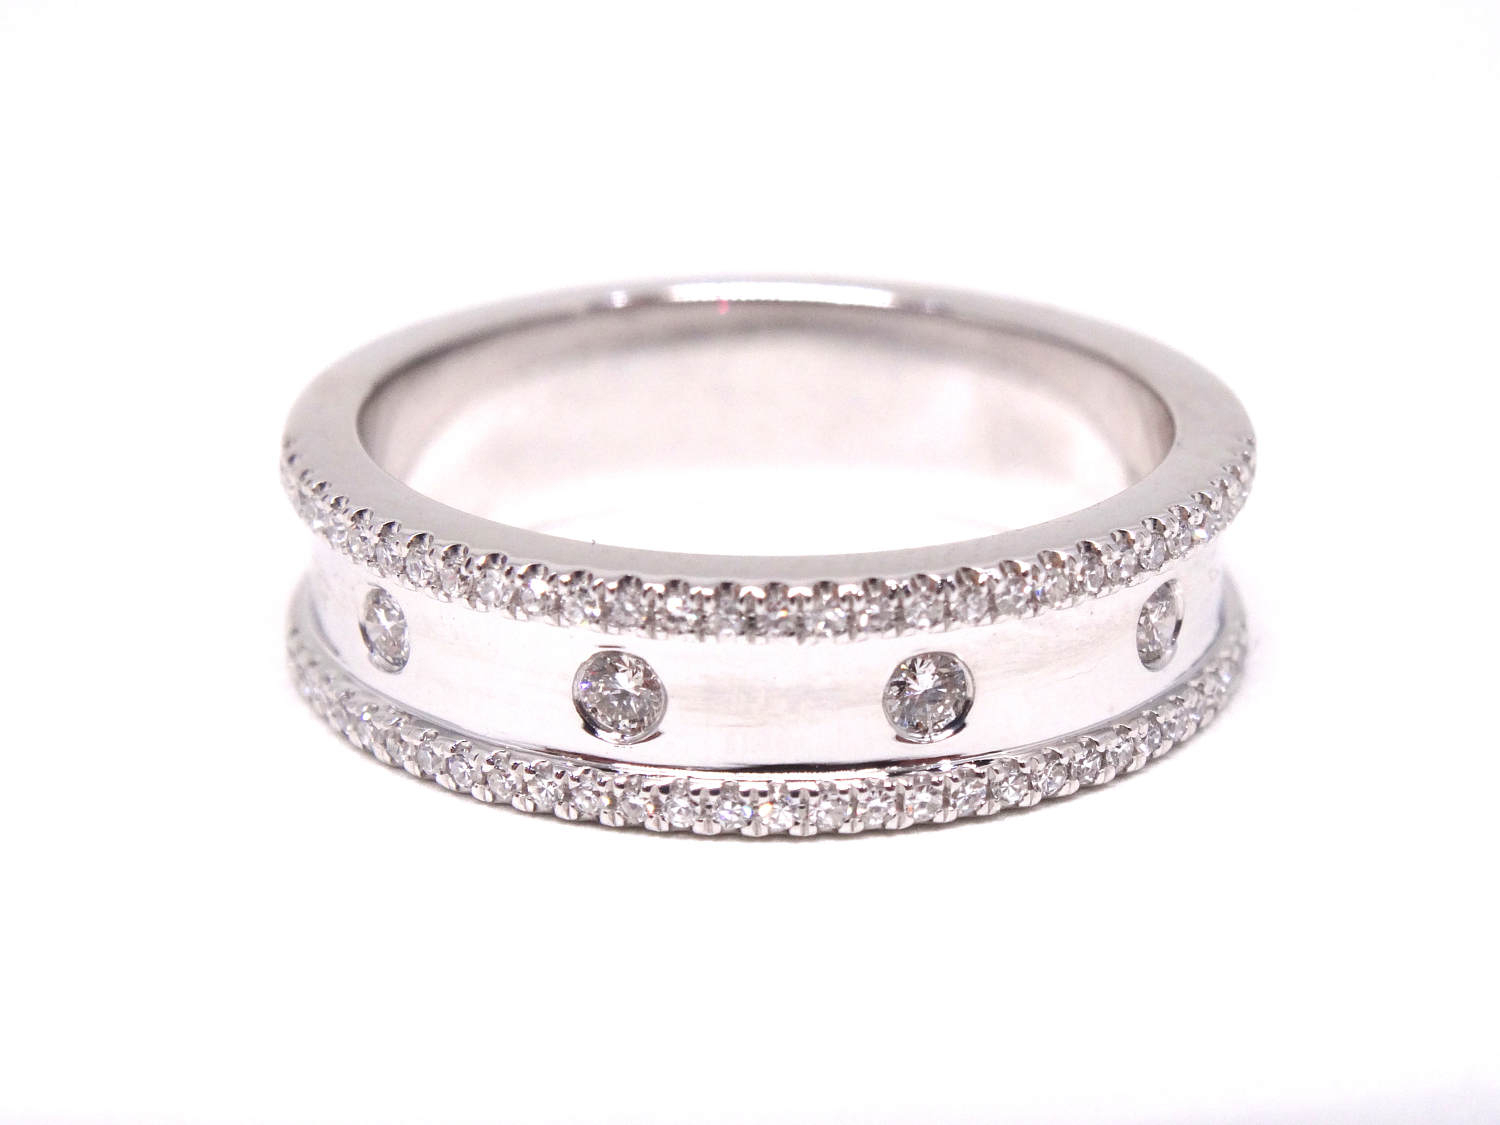 14K White Gold Diamond Antique Style Art Deco Bezel Set Pertaining To Latest Diamond Eternity Anniversary Vintage Style Bands In White Gold (View 3 of 25)